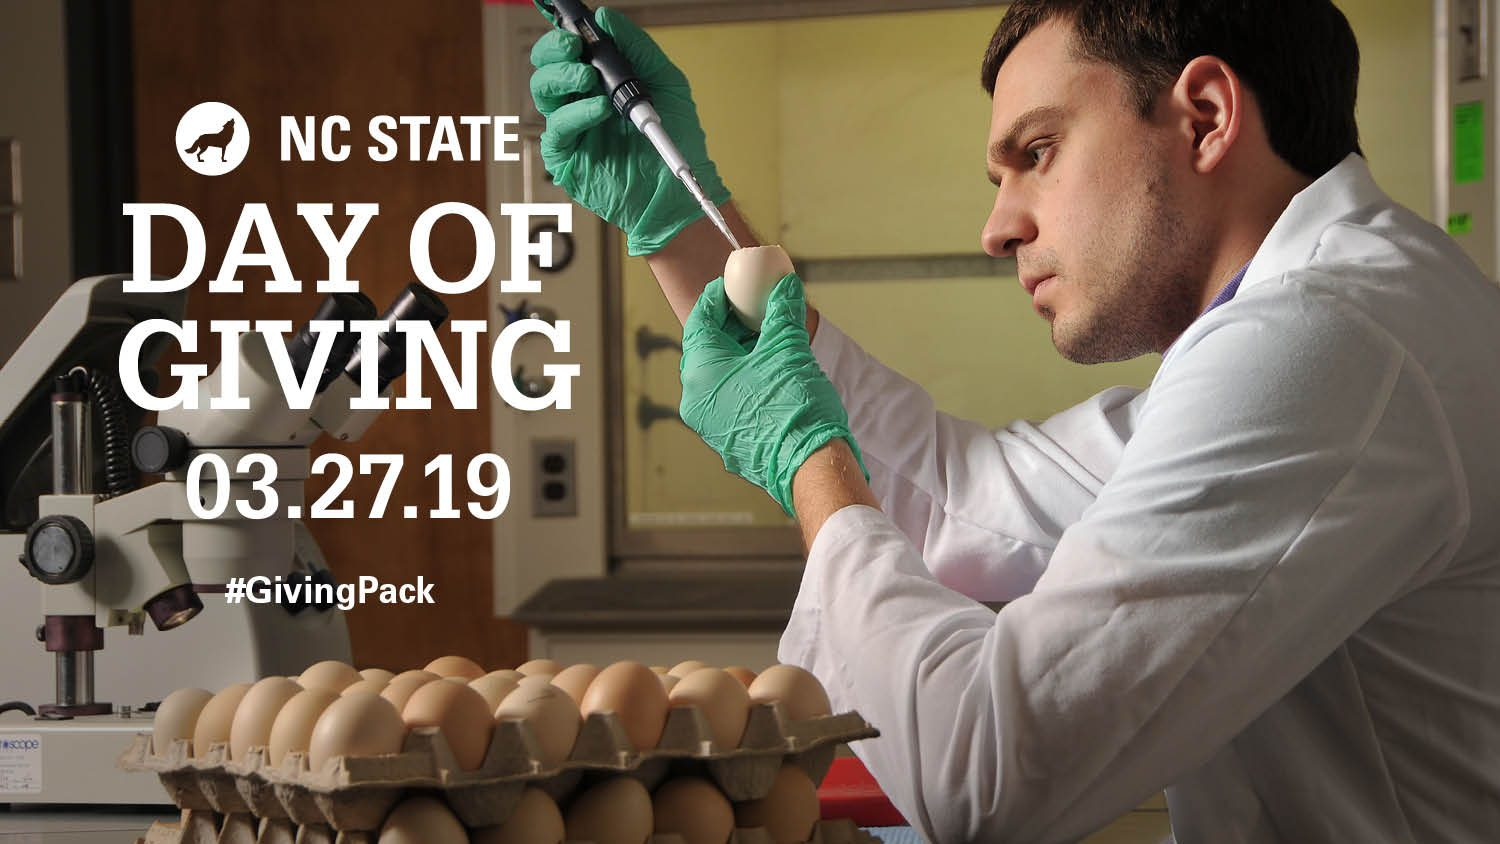 Scientist holding an egg and pipette image with NC State Day of Givnig logo